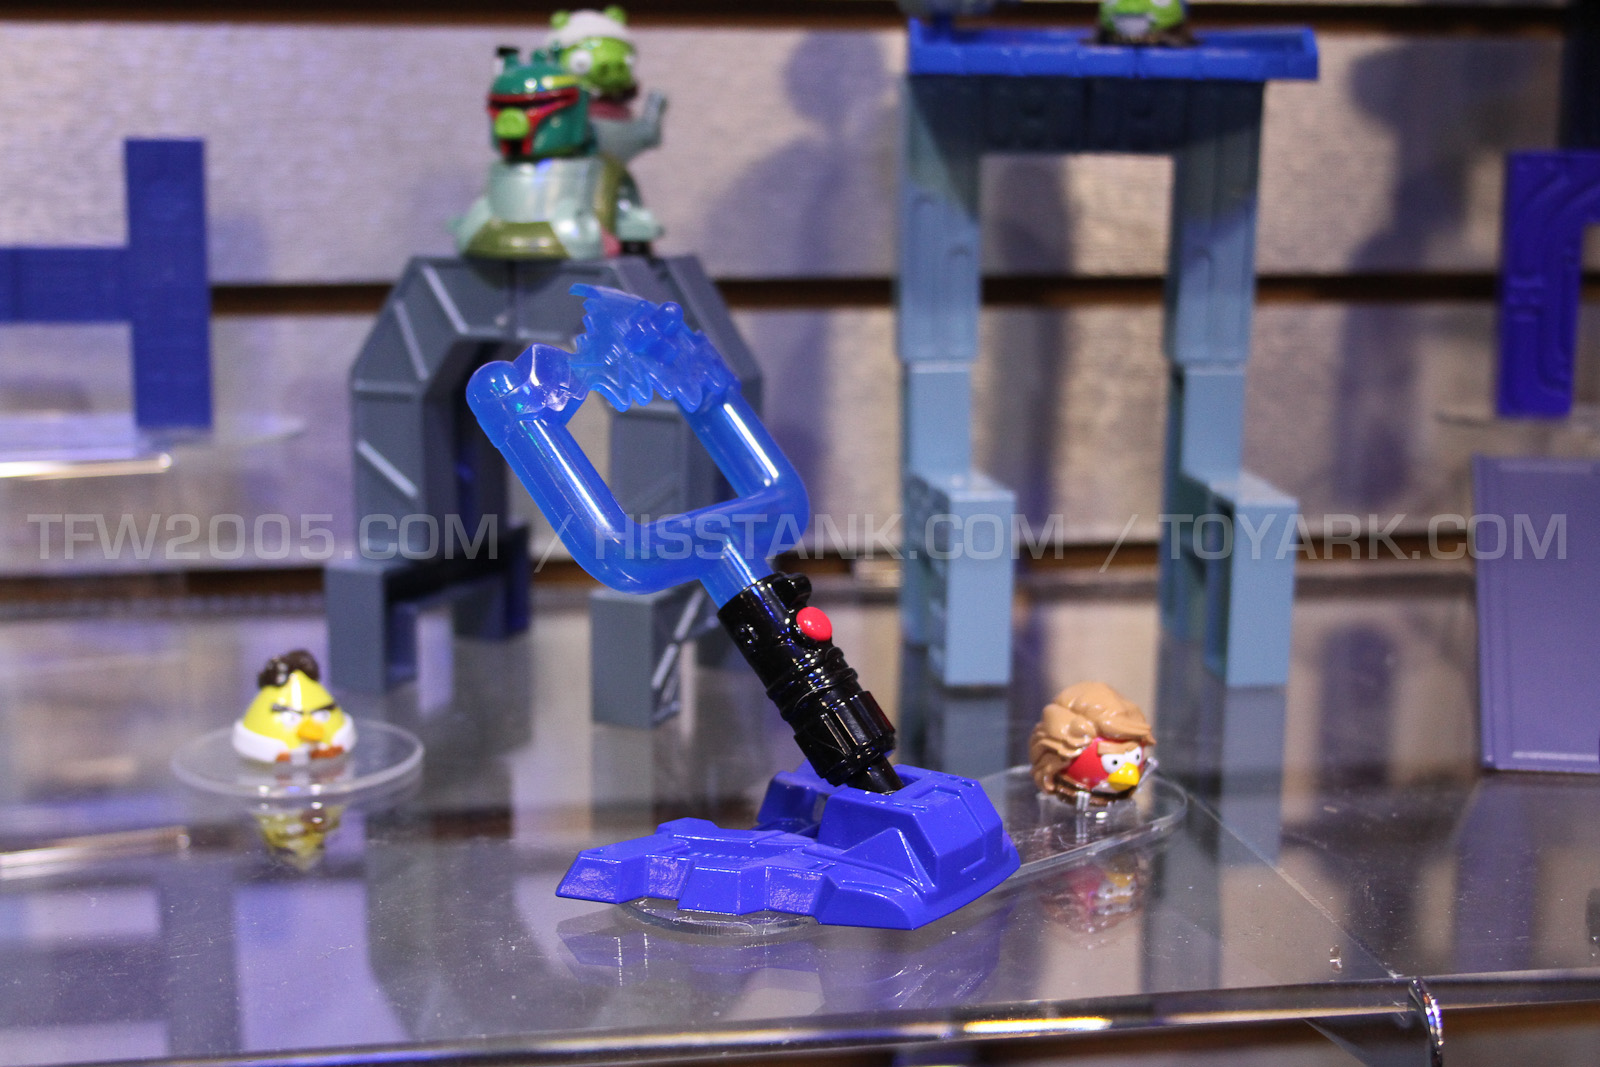 Star Wars Toys 2013 : Angry birds star wars toys from toy fair the toyark